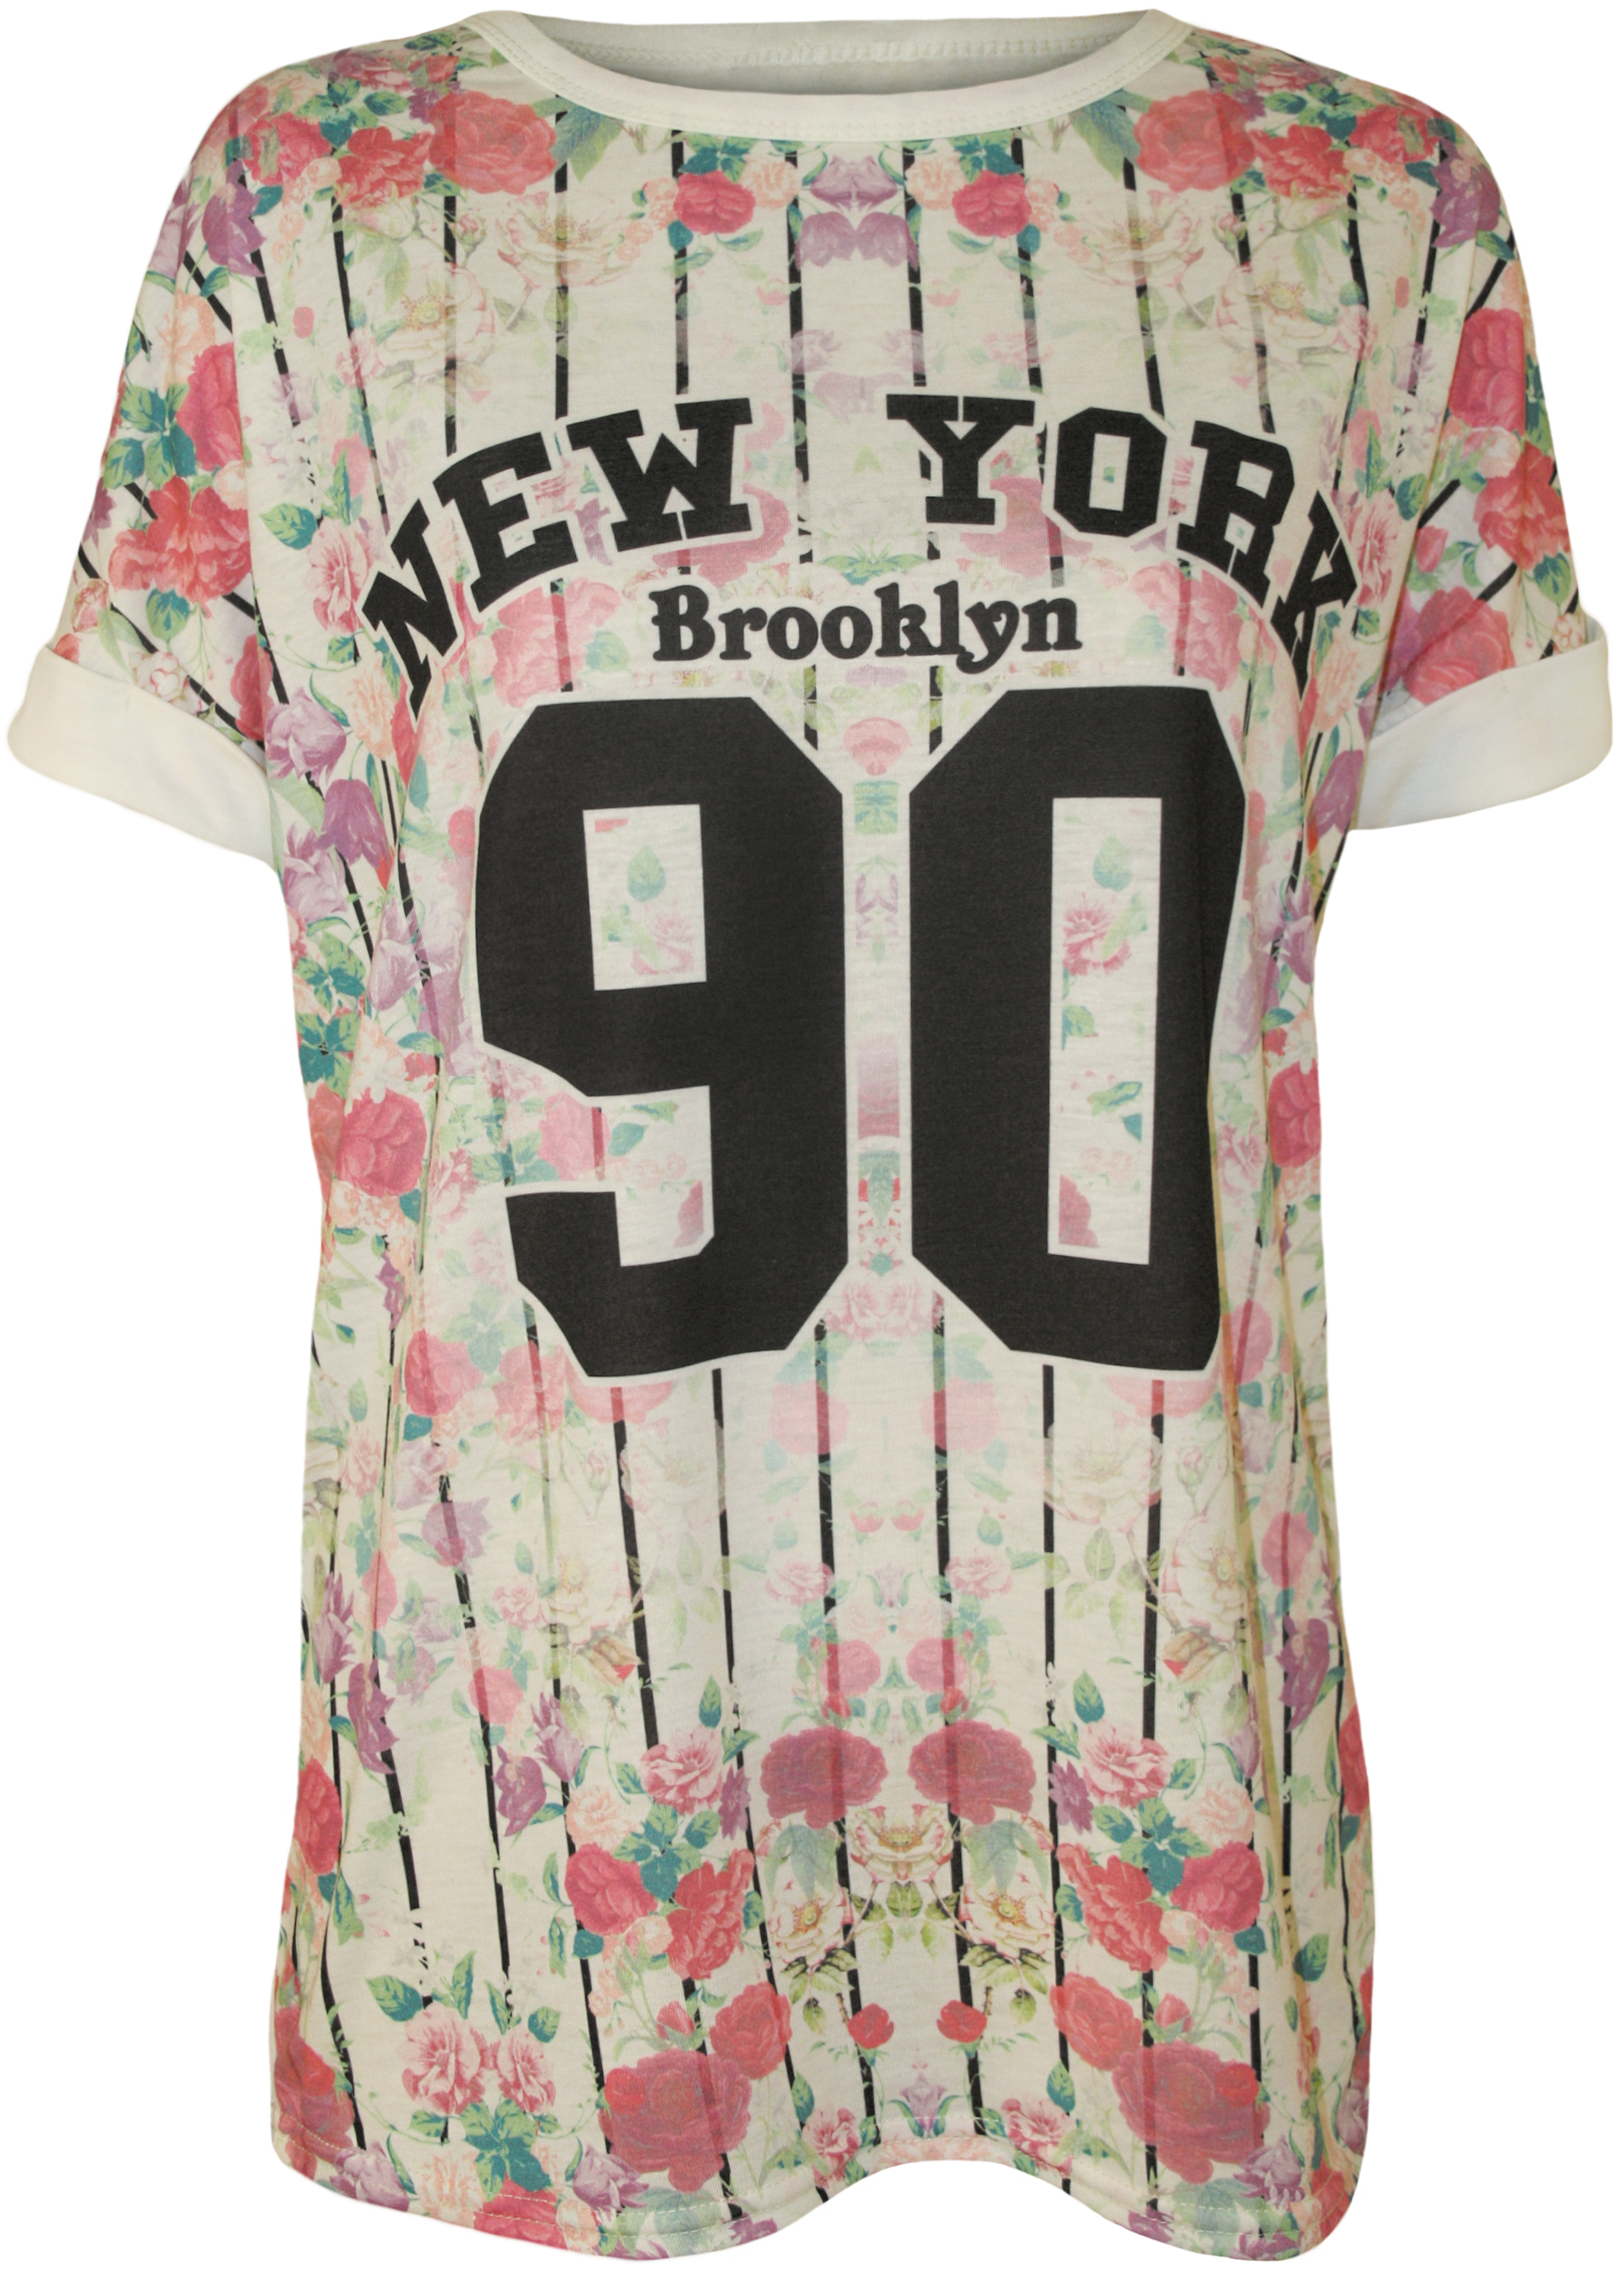 damen t shirt blumen 39 new york 39 aufdruck kurz rmelig baseball t shirt top 36 42 ebay. Black Bedroom Furniture Sets. Home Design Ideas